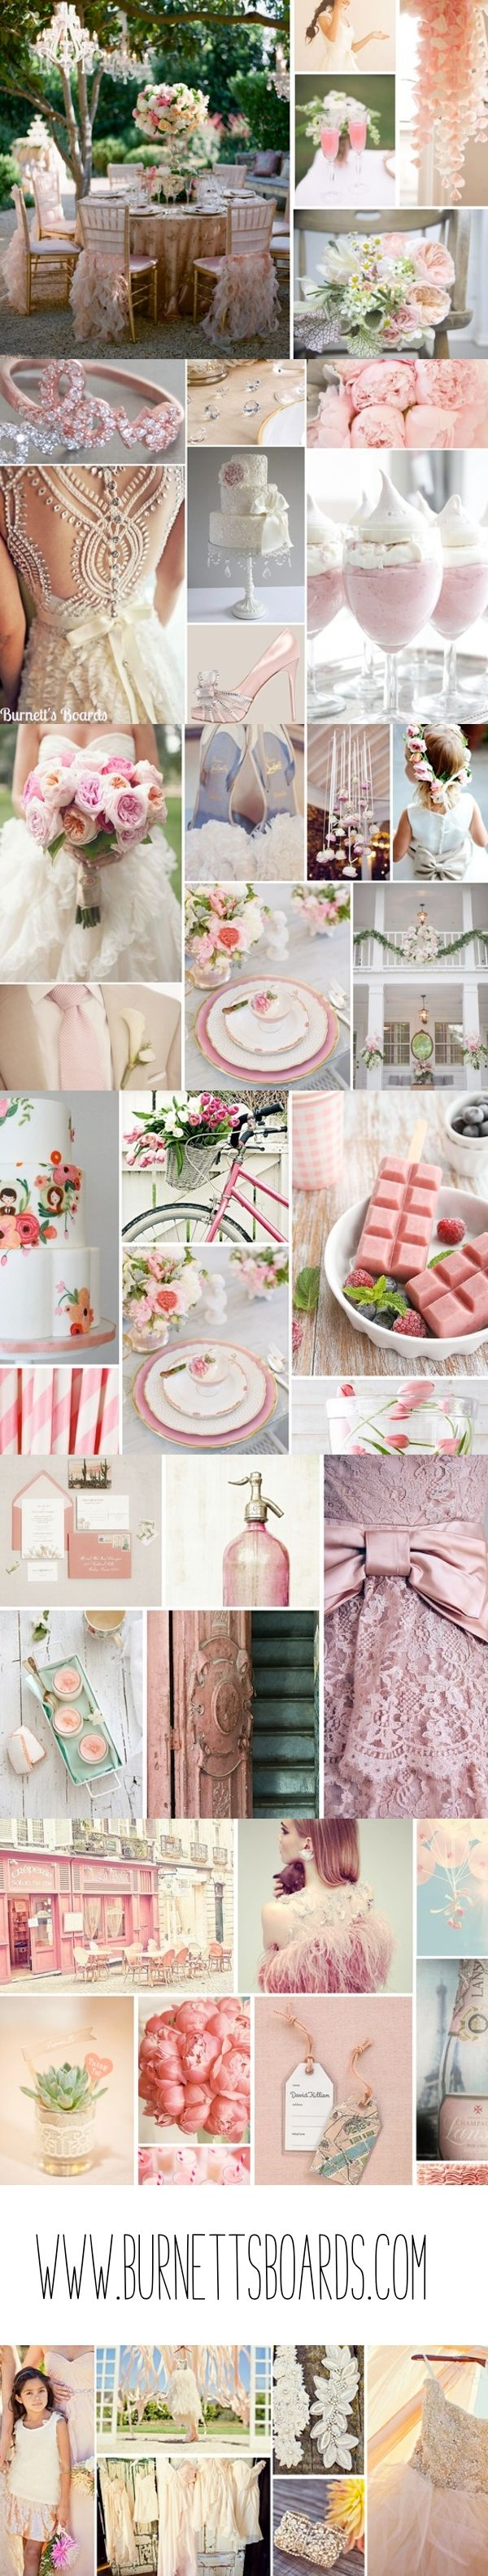 Light pink wedding inspiration from www.burenttsboards.com